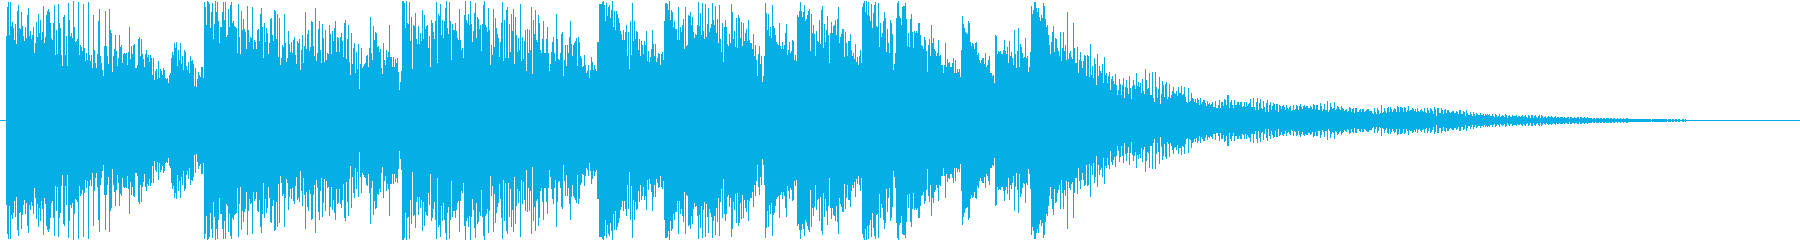 Sound logo, synth and impressive melody's reproduced waveform